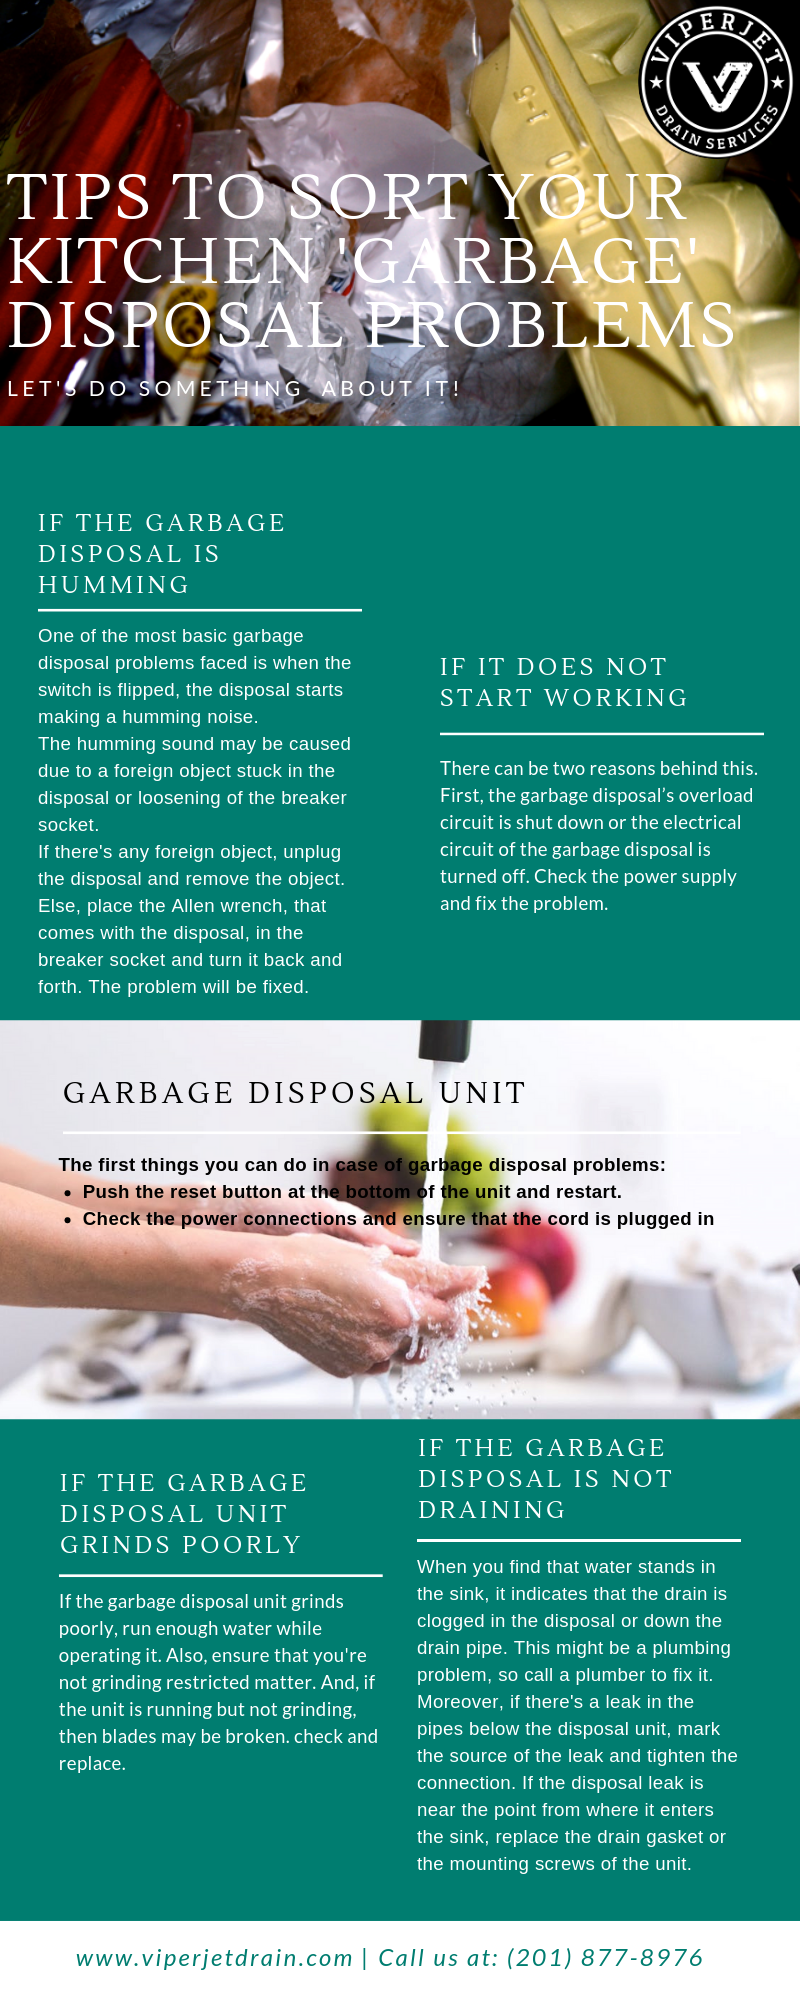 How to Fix Your Kitchen 'Garbage' Disposal Problems?